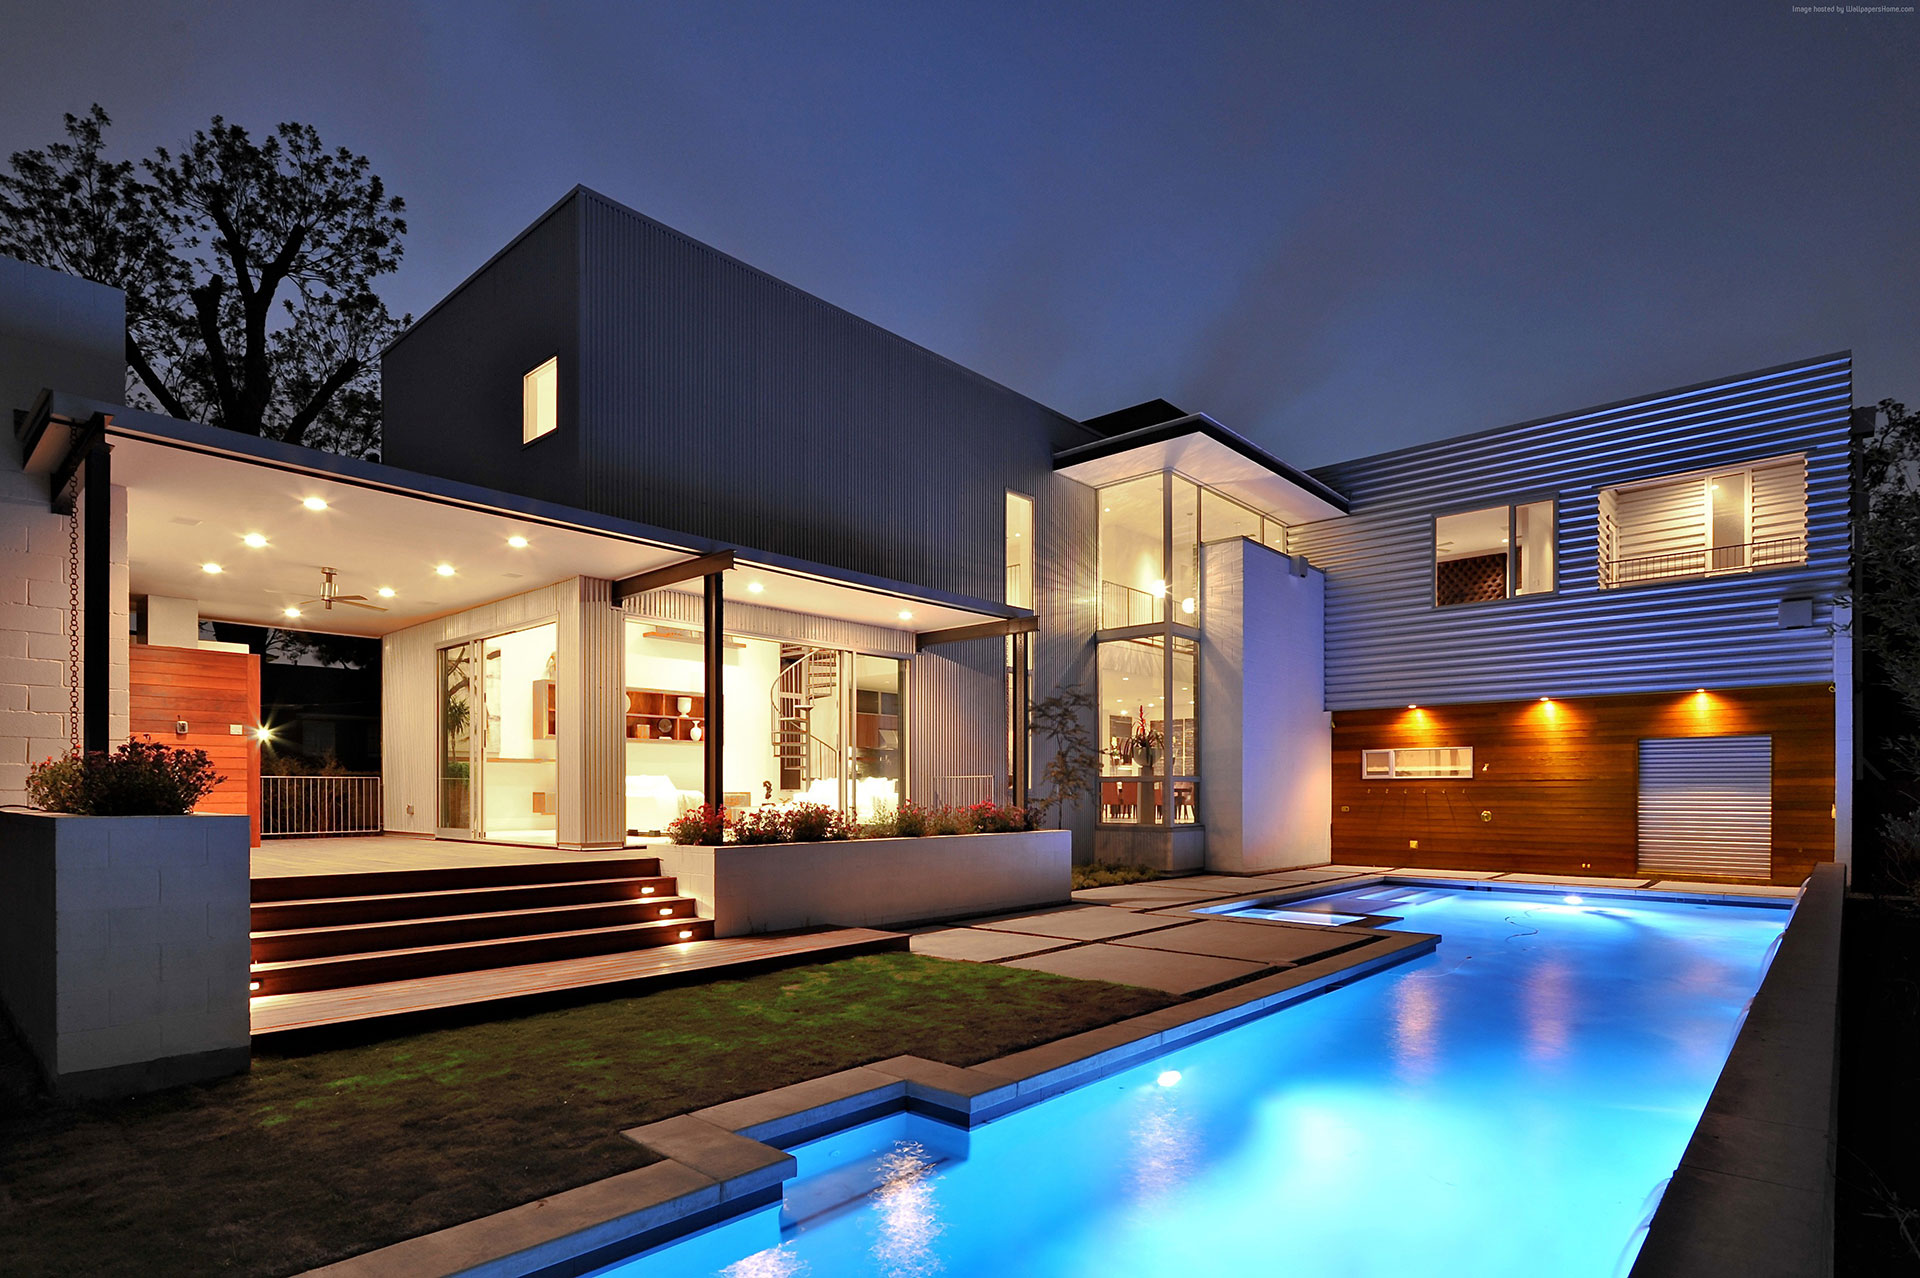 Architecture Homes For Sale - Architect designed homes for sale